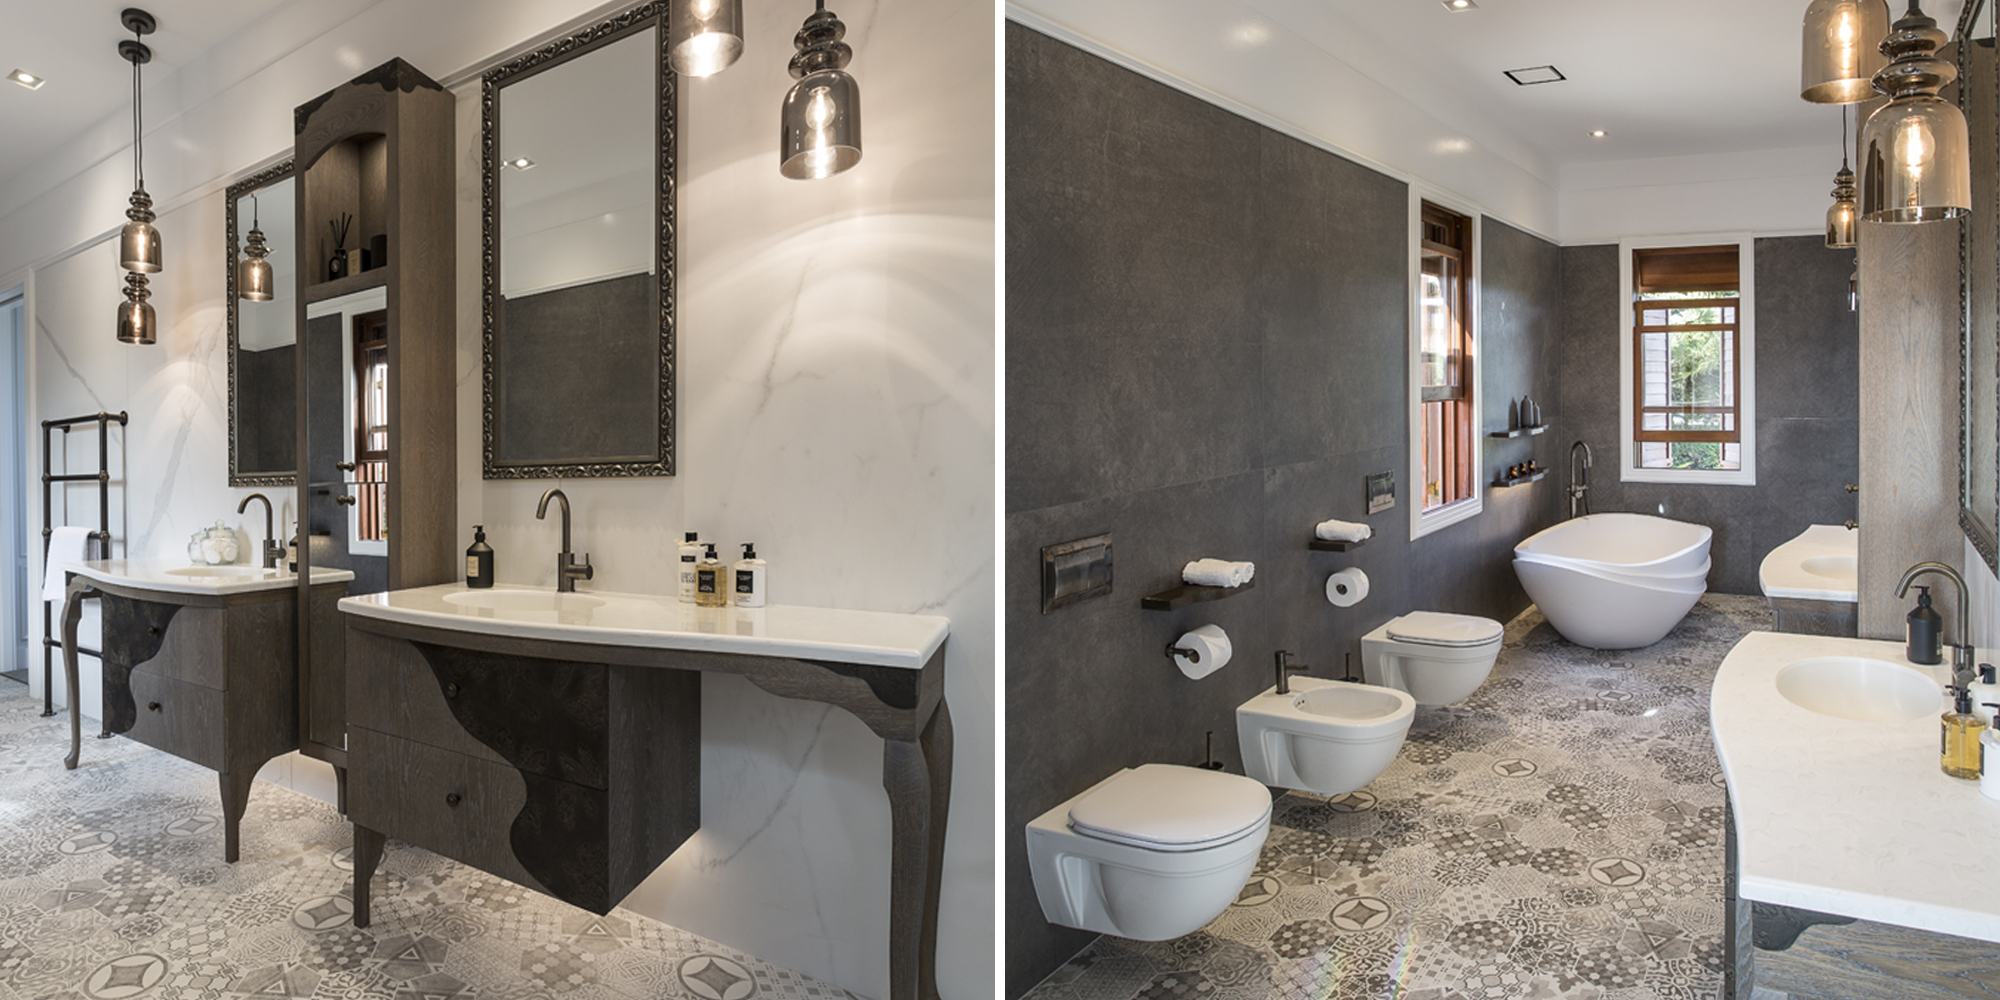 KBD-Italianate-Bathroom-3.jpg